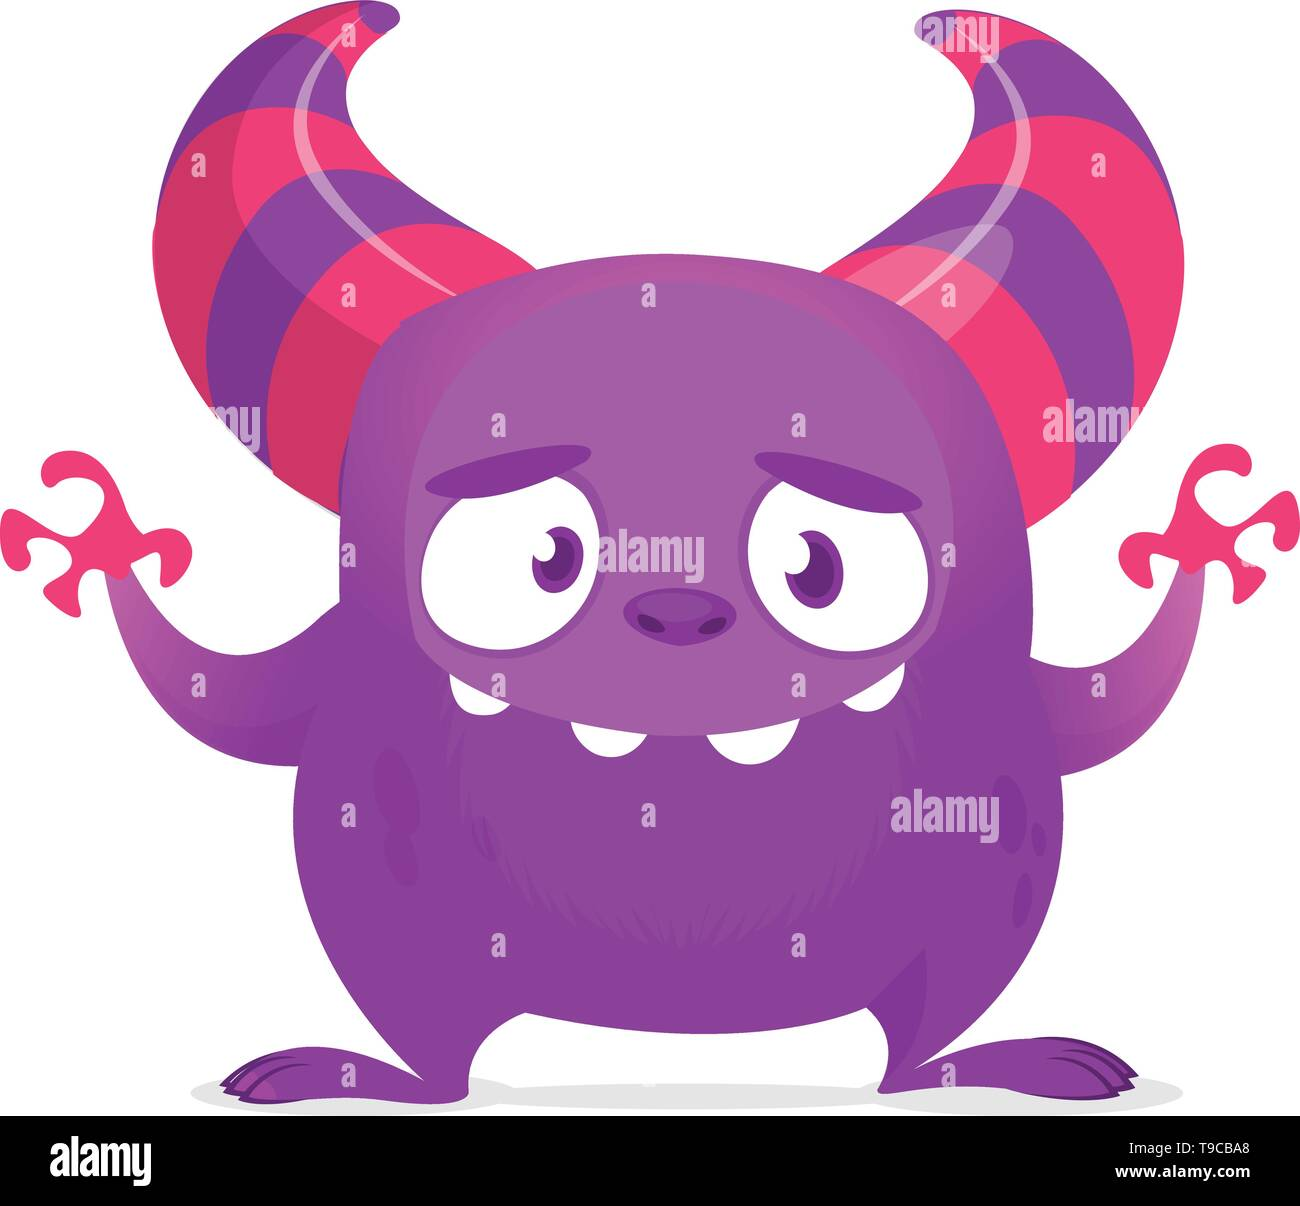 Funny cartoon monster with big smile waving hands. Vector purple monster illustration. Halloween design - Stock Image